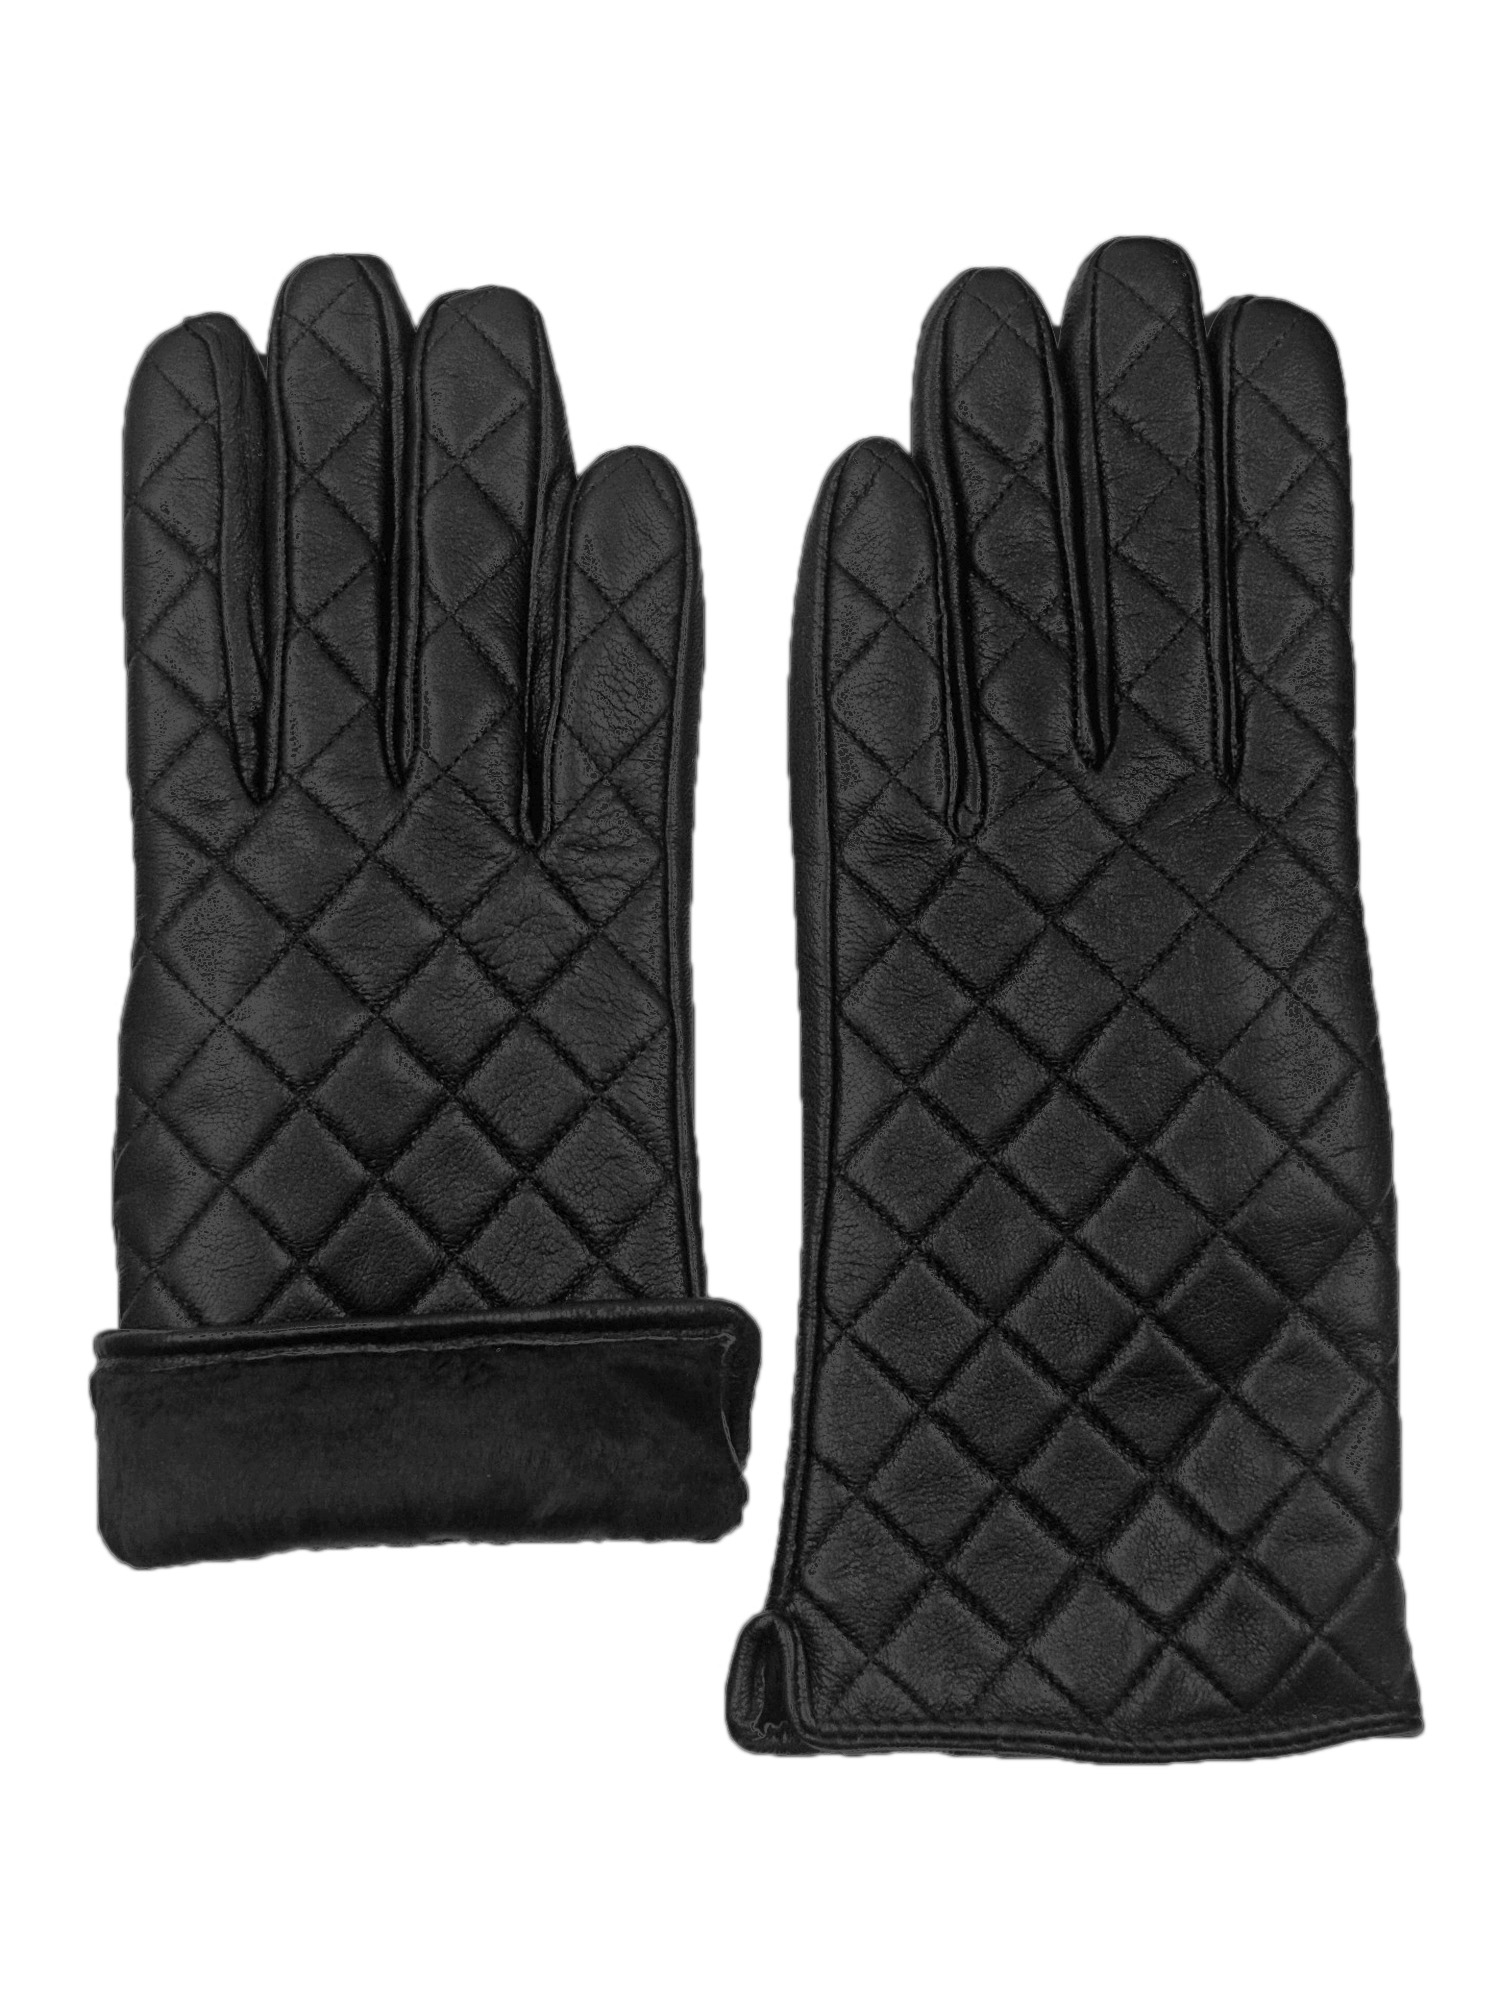 thumbnail 6 - Giromy-Samoni-Womens-Warm-Winter-Leather-Quilted-Dress-Driving-Gloves-Black